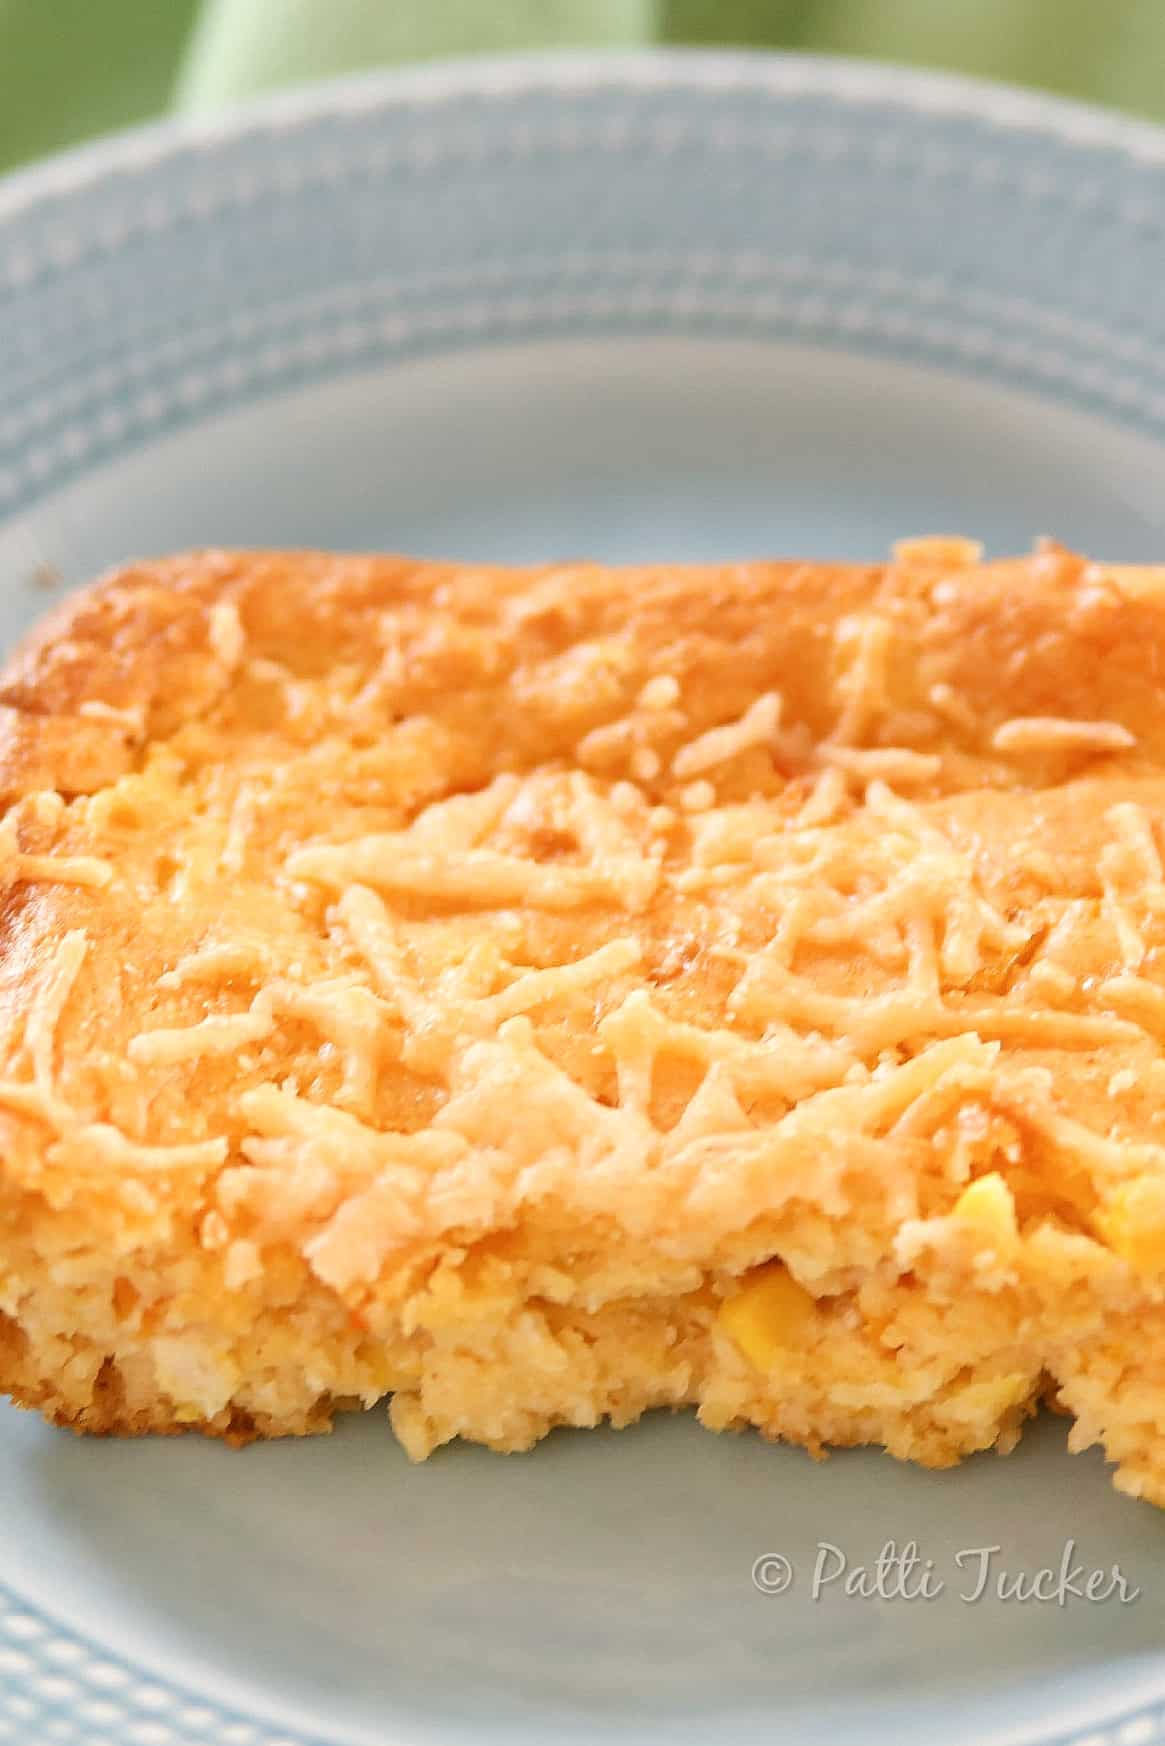 No need to fry anything to get that great corn fritter yum. Make this instead! #cor #cornfritter #casserole #ohmrstucker #sides